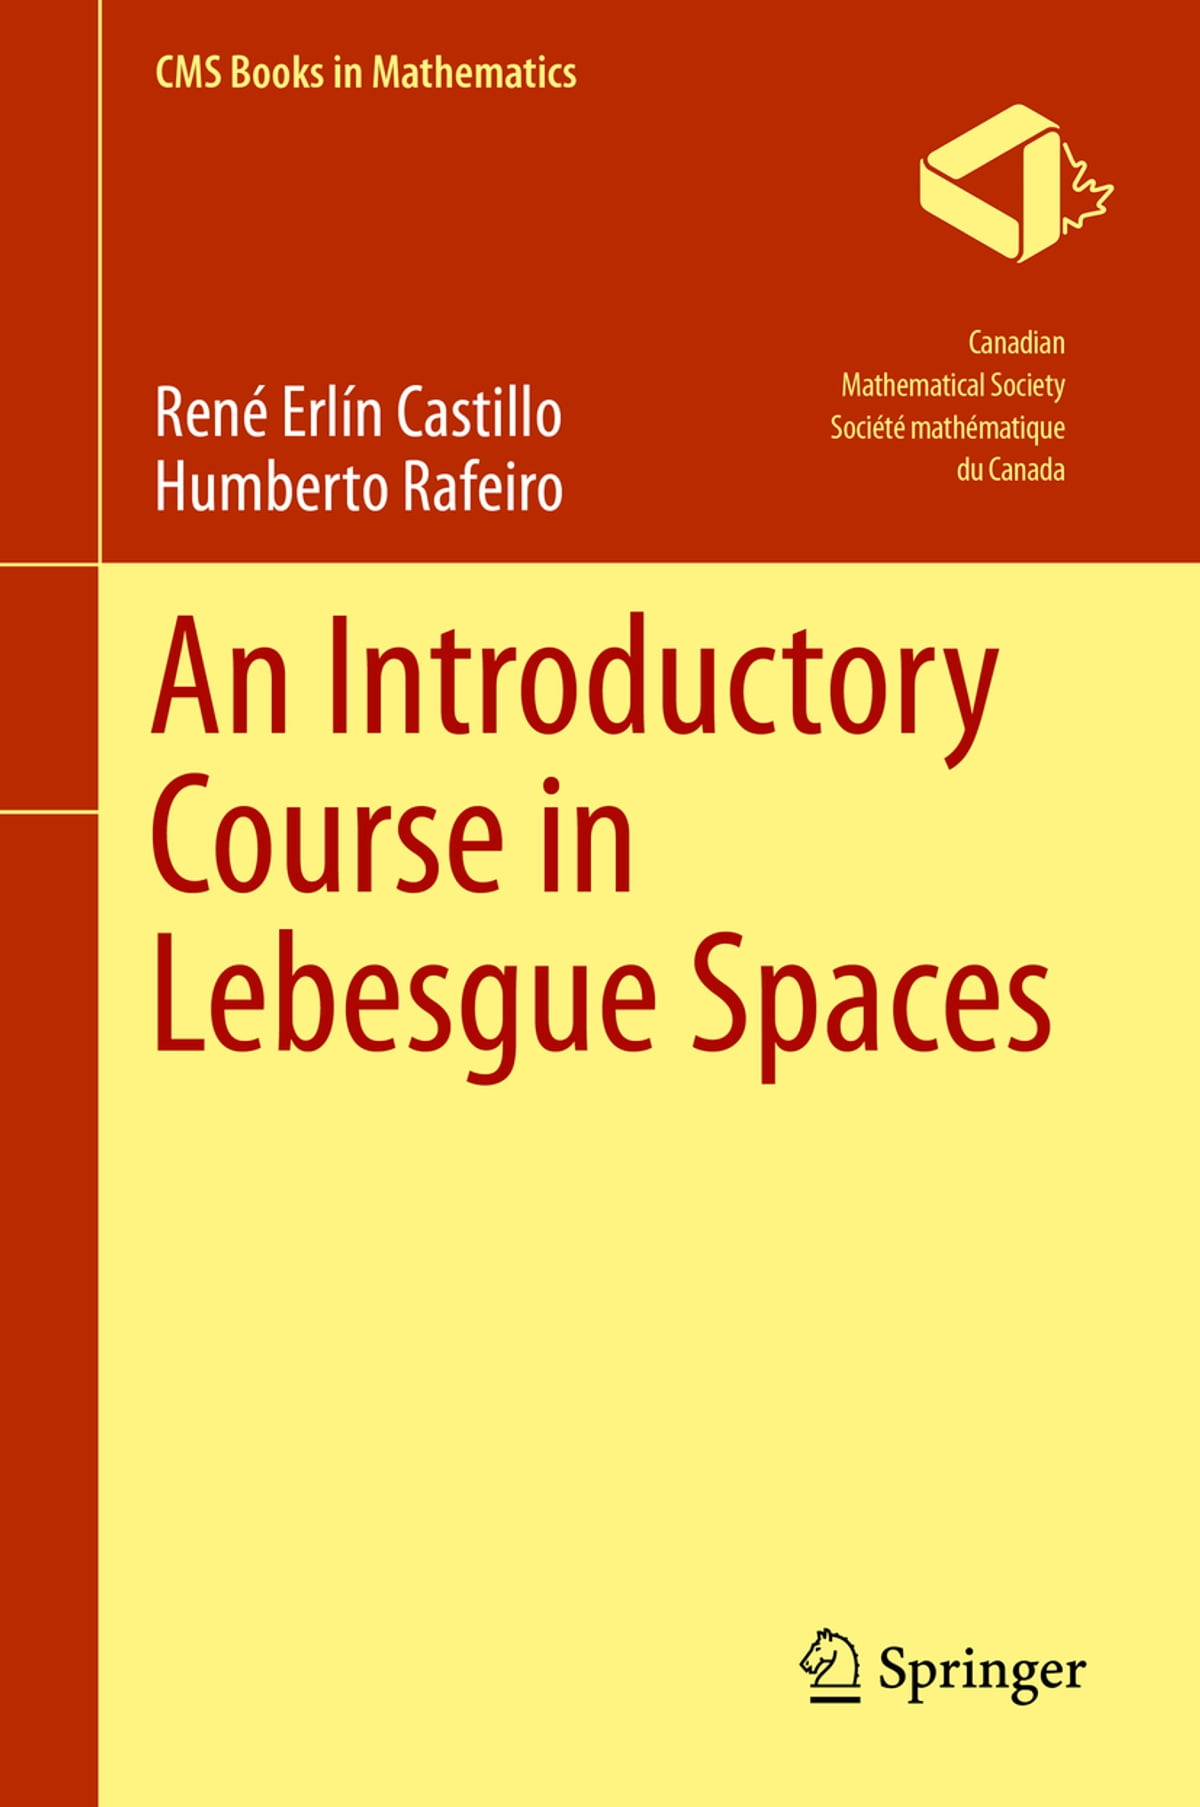 An introductory course in lebesgue spaces ebook by rene erlin an introductory course in lebesgue spaces ebook by rene erlin castillo 9783319300344 rakuten kobo fandeluxe Image collections